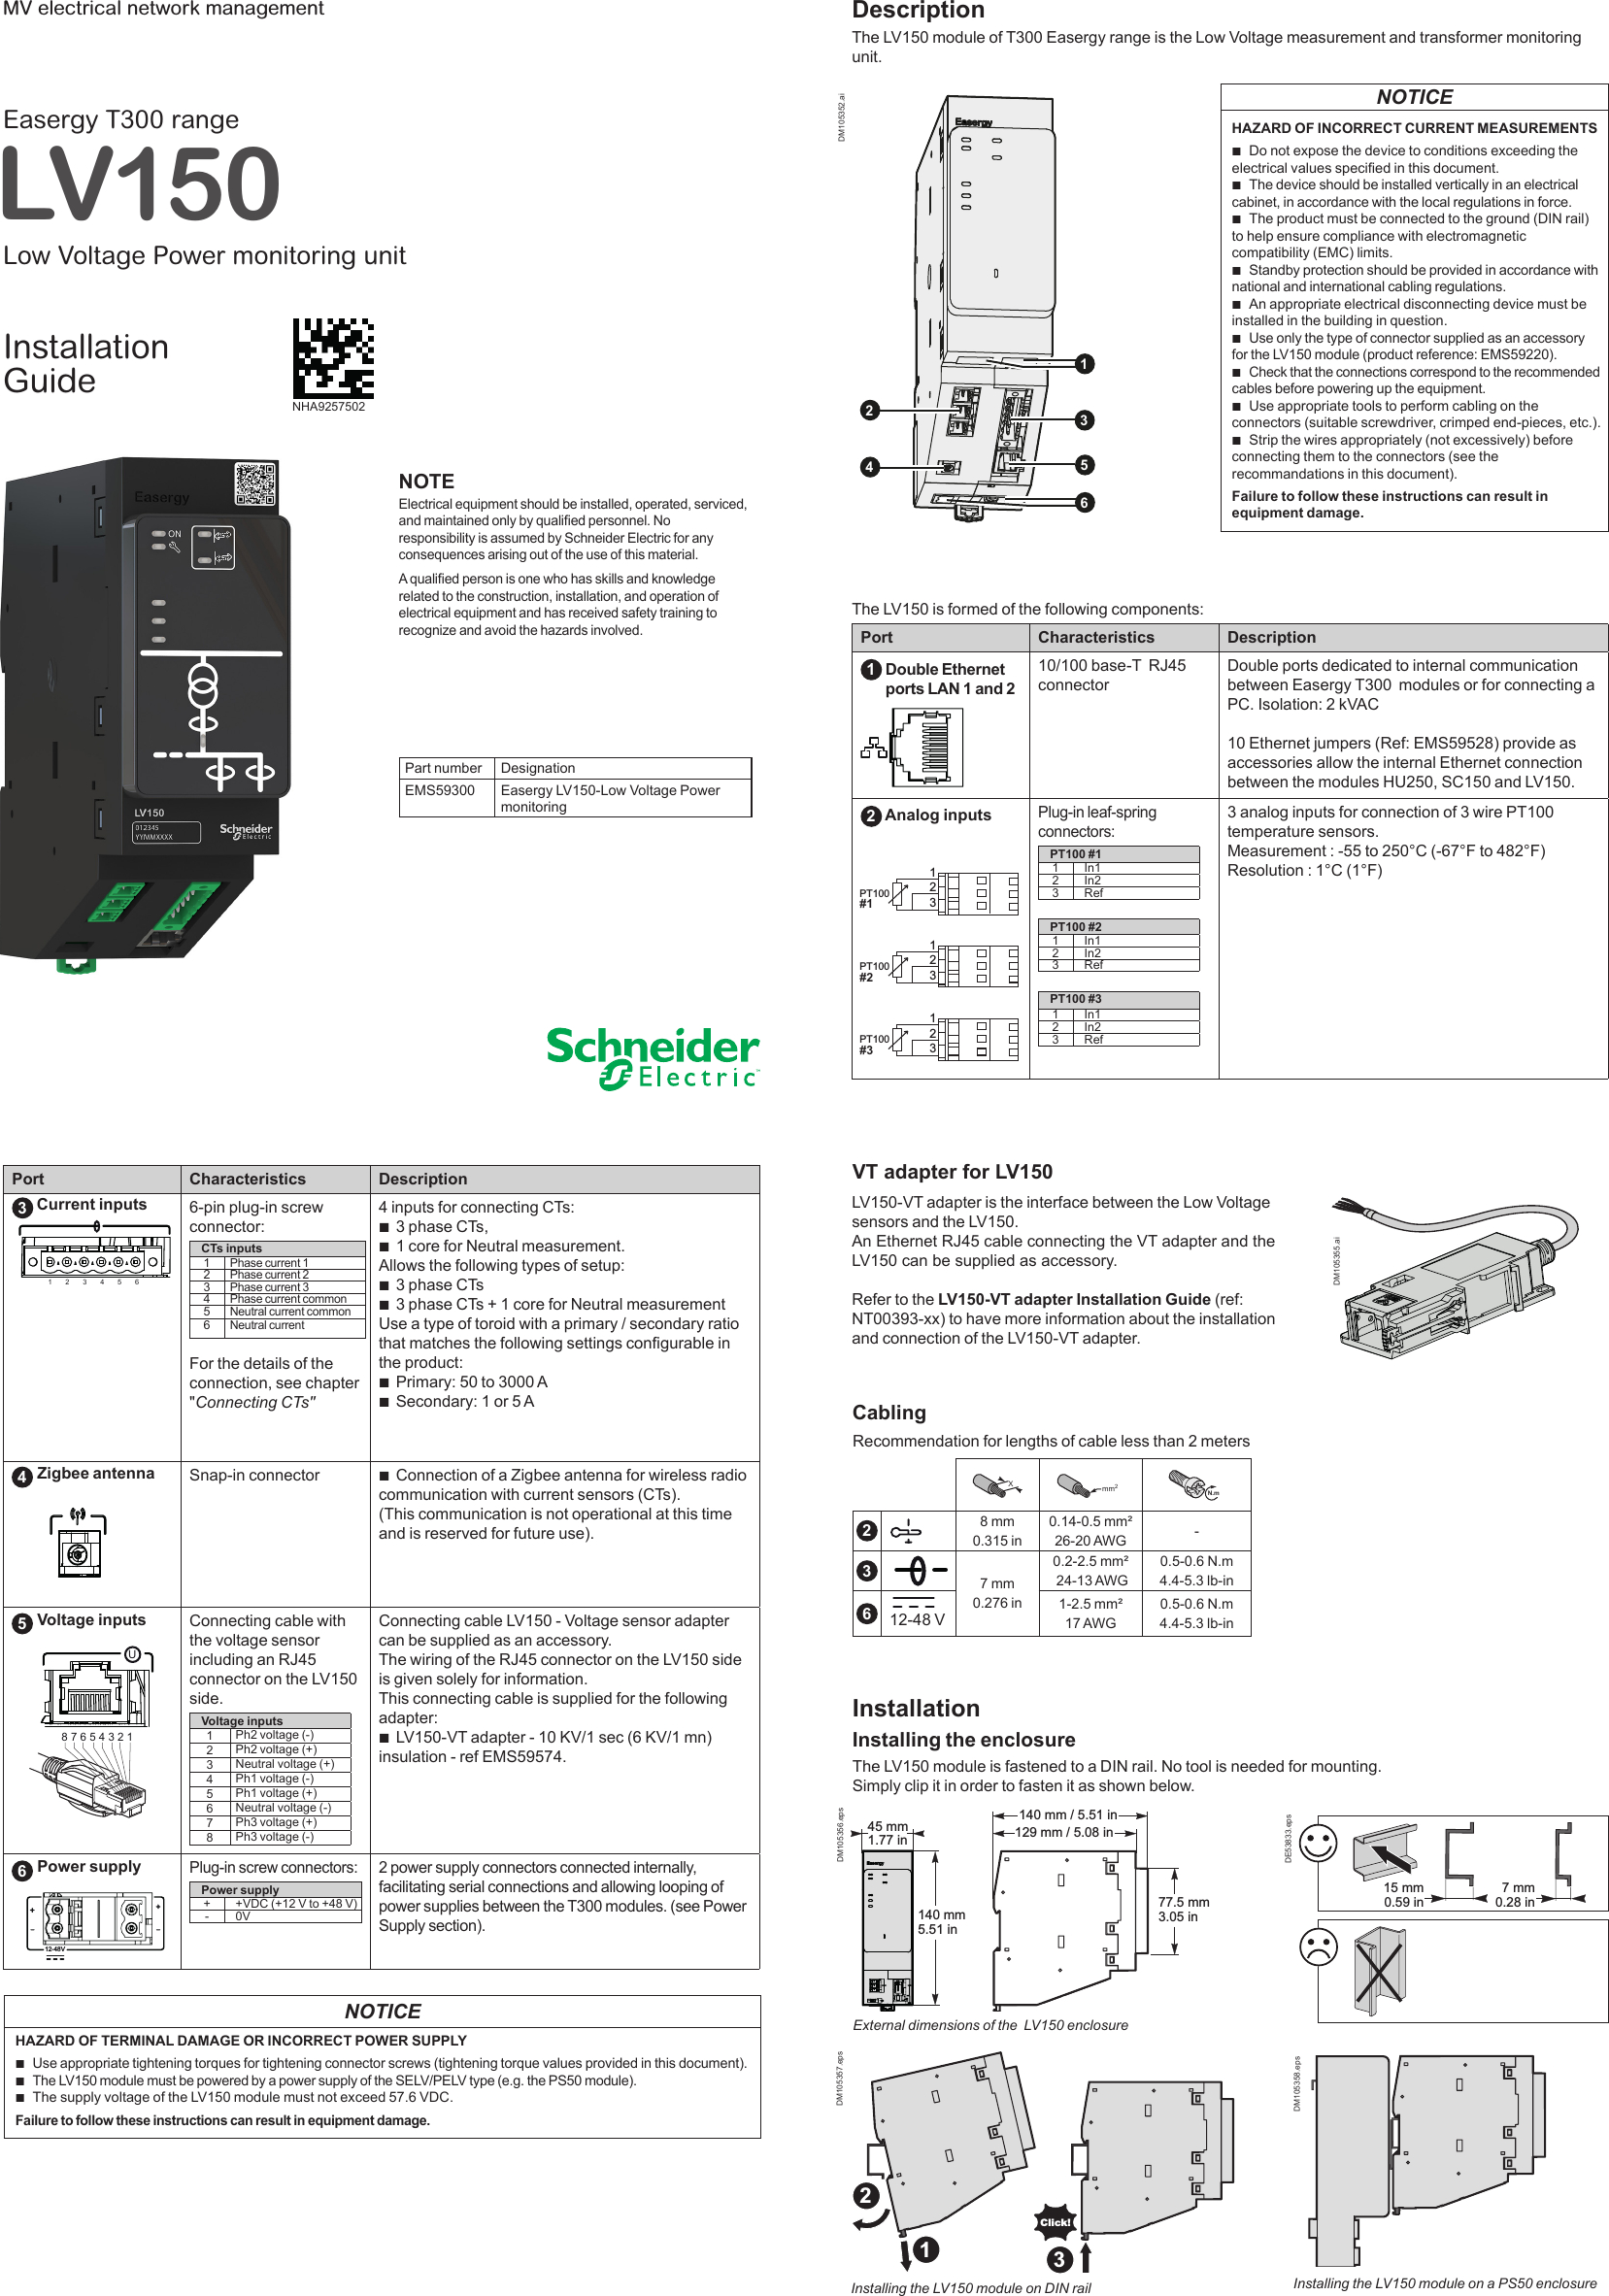 12s meter wiring diagram Collection-Page 1 of EASERGYLV150 Easergy LV150 Low voltage Power meter User Manual SCHNEIDER ELECTRIC INDUSTRIES FRANCE 2-e